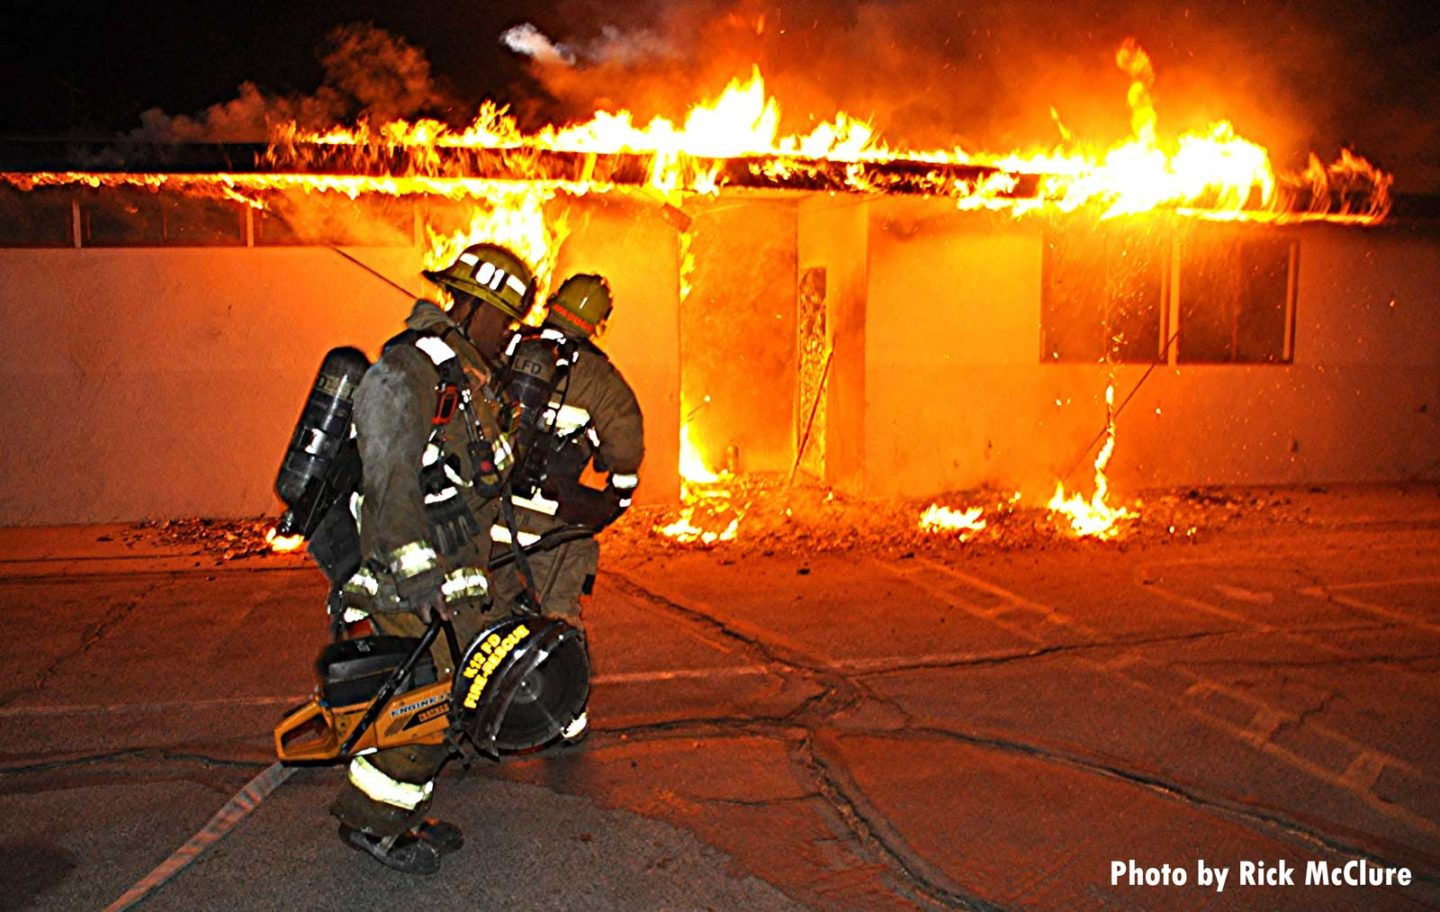 One firefighter with a circular saw and another with a hoseline as fire runs the roof